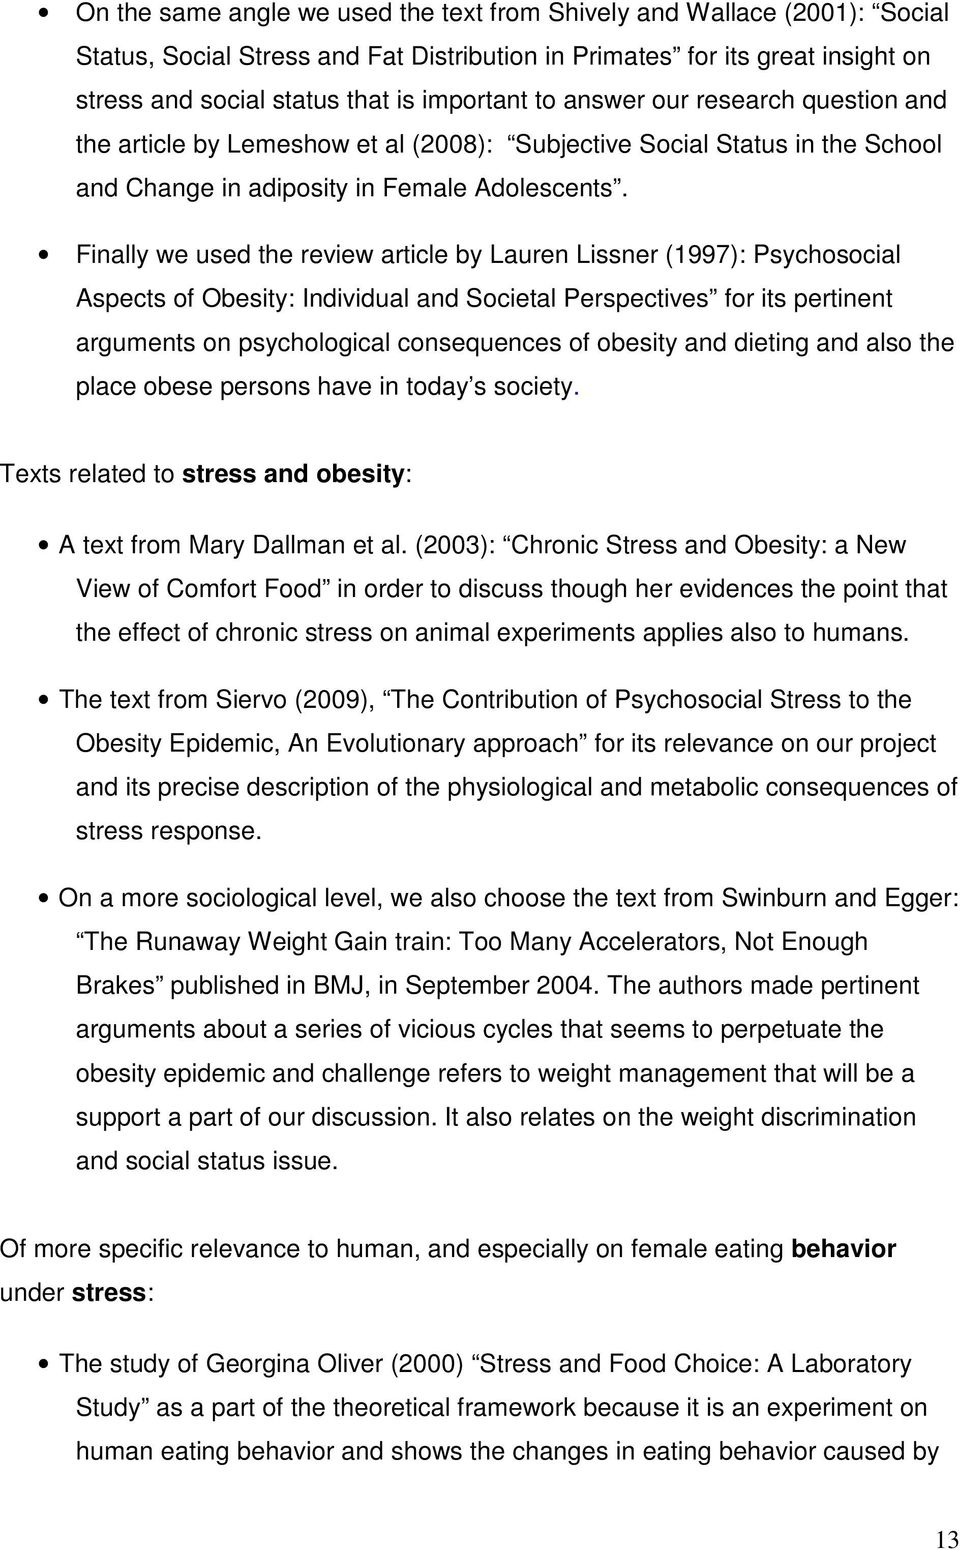 Finally we used the review article by Lauren Lissner (1997): Psychosocial Aspects of Obesity: Individual and Societal Perspectives for its pertinent arguments on psychological consequences of obesity